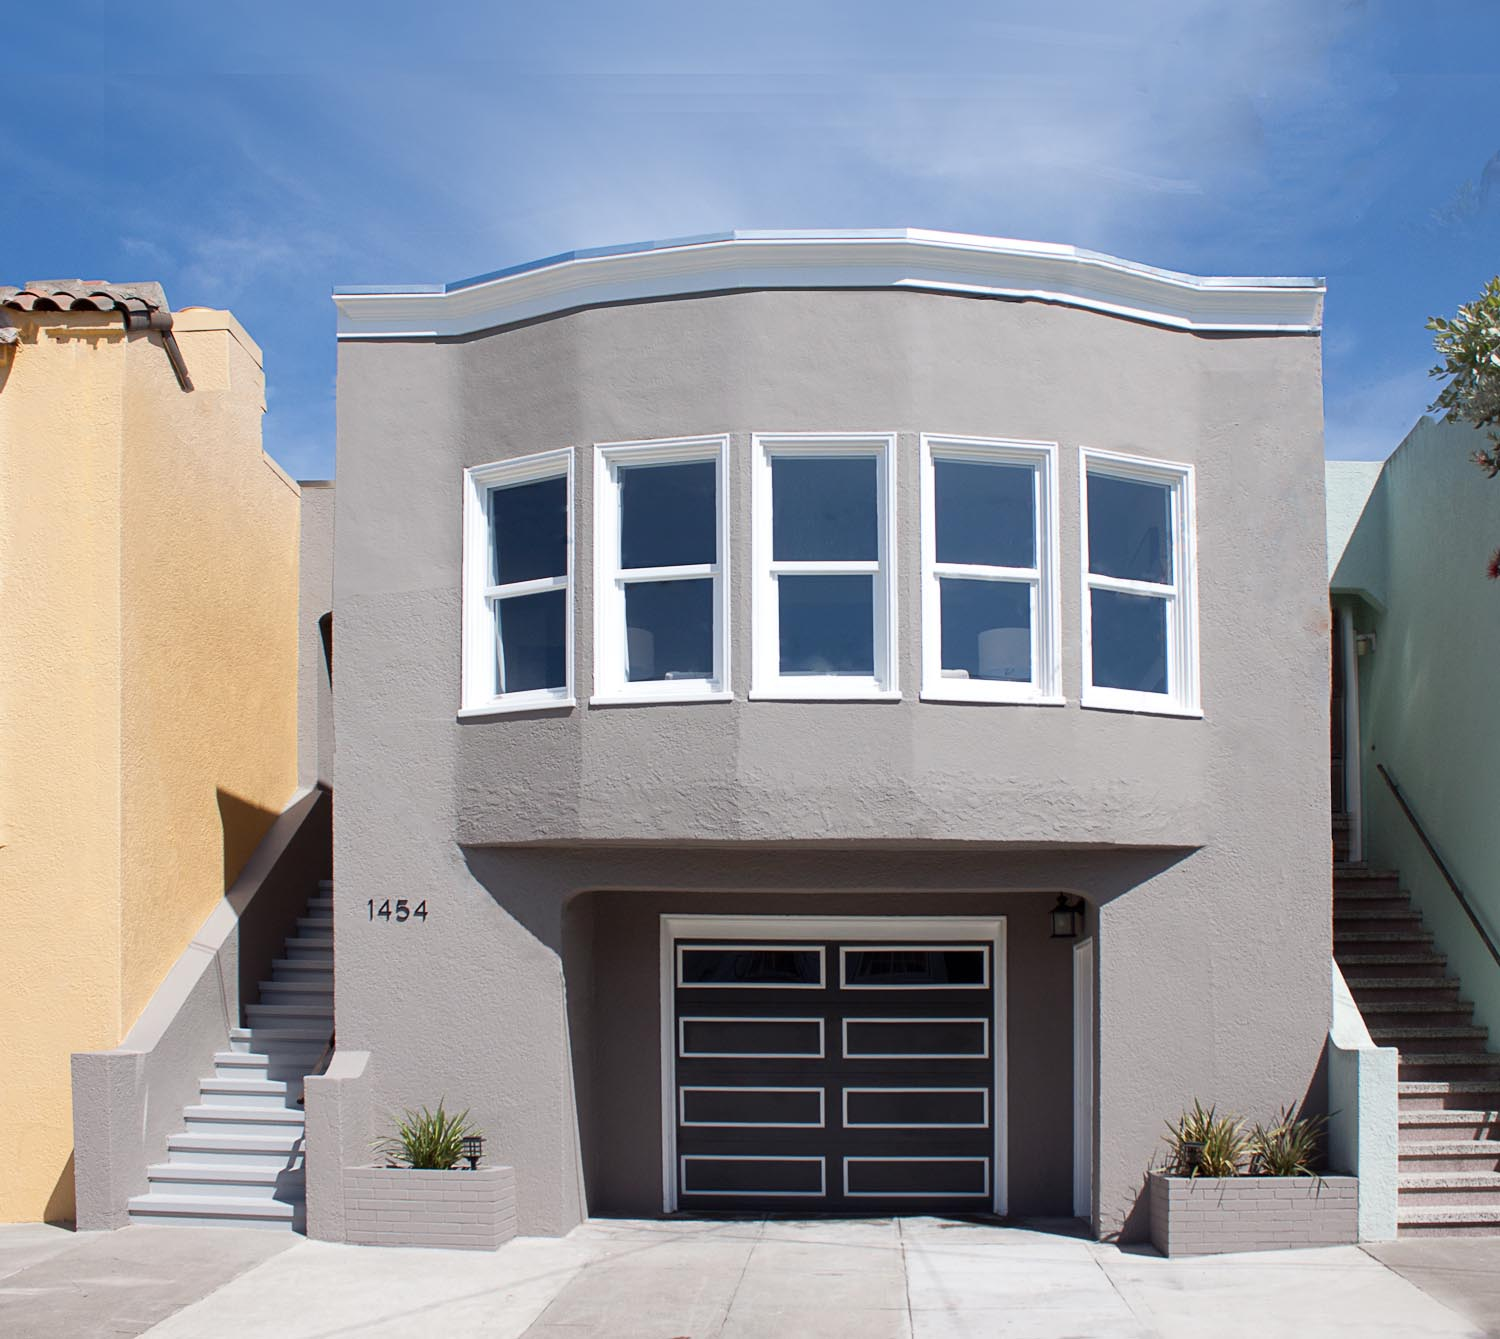 Sold at $1,545,000<strong>1454 40th Avenue, San Francisco</strong>